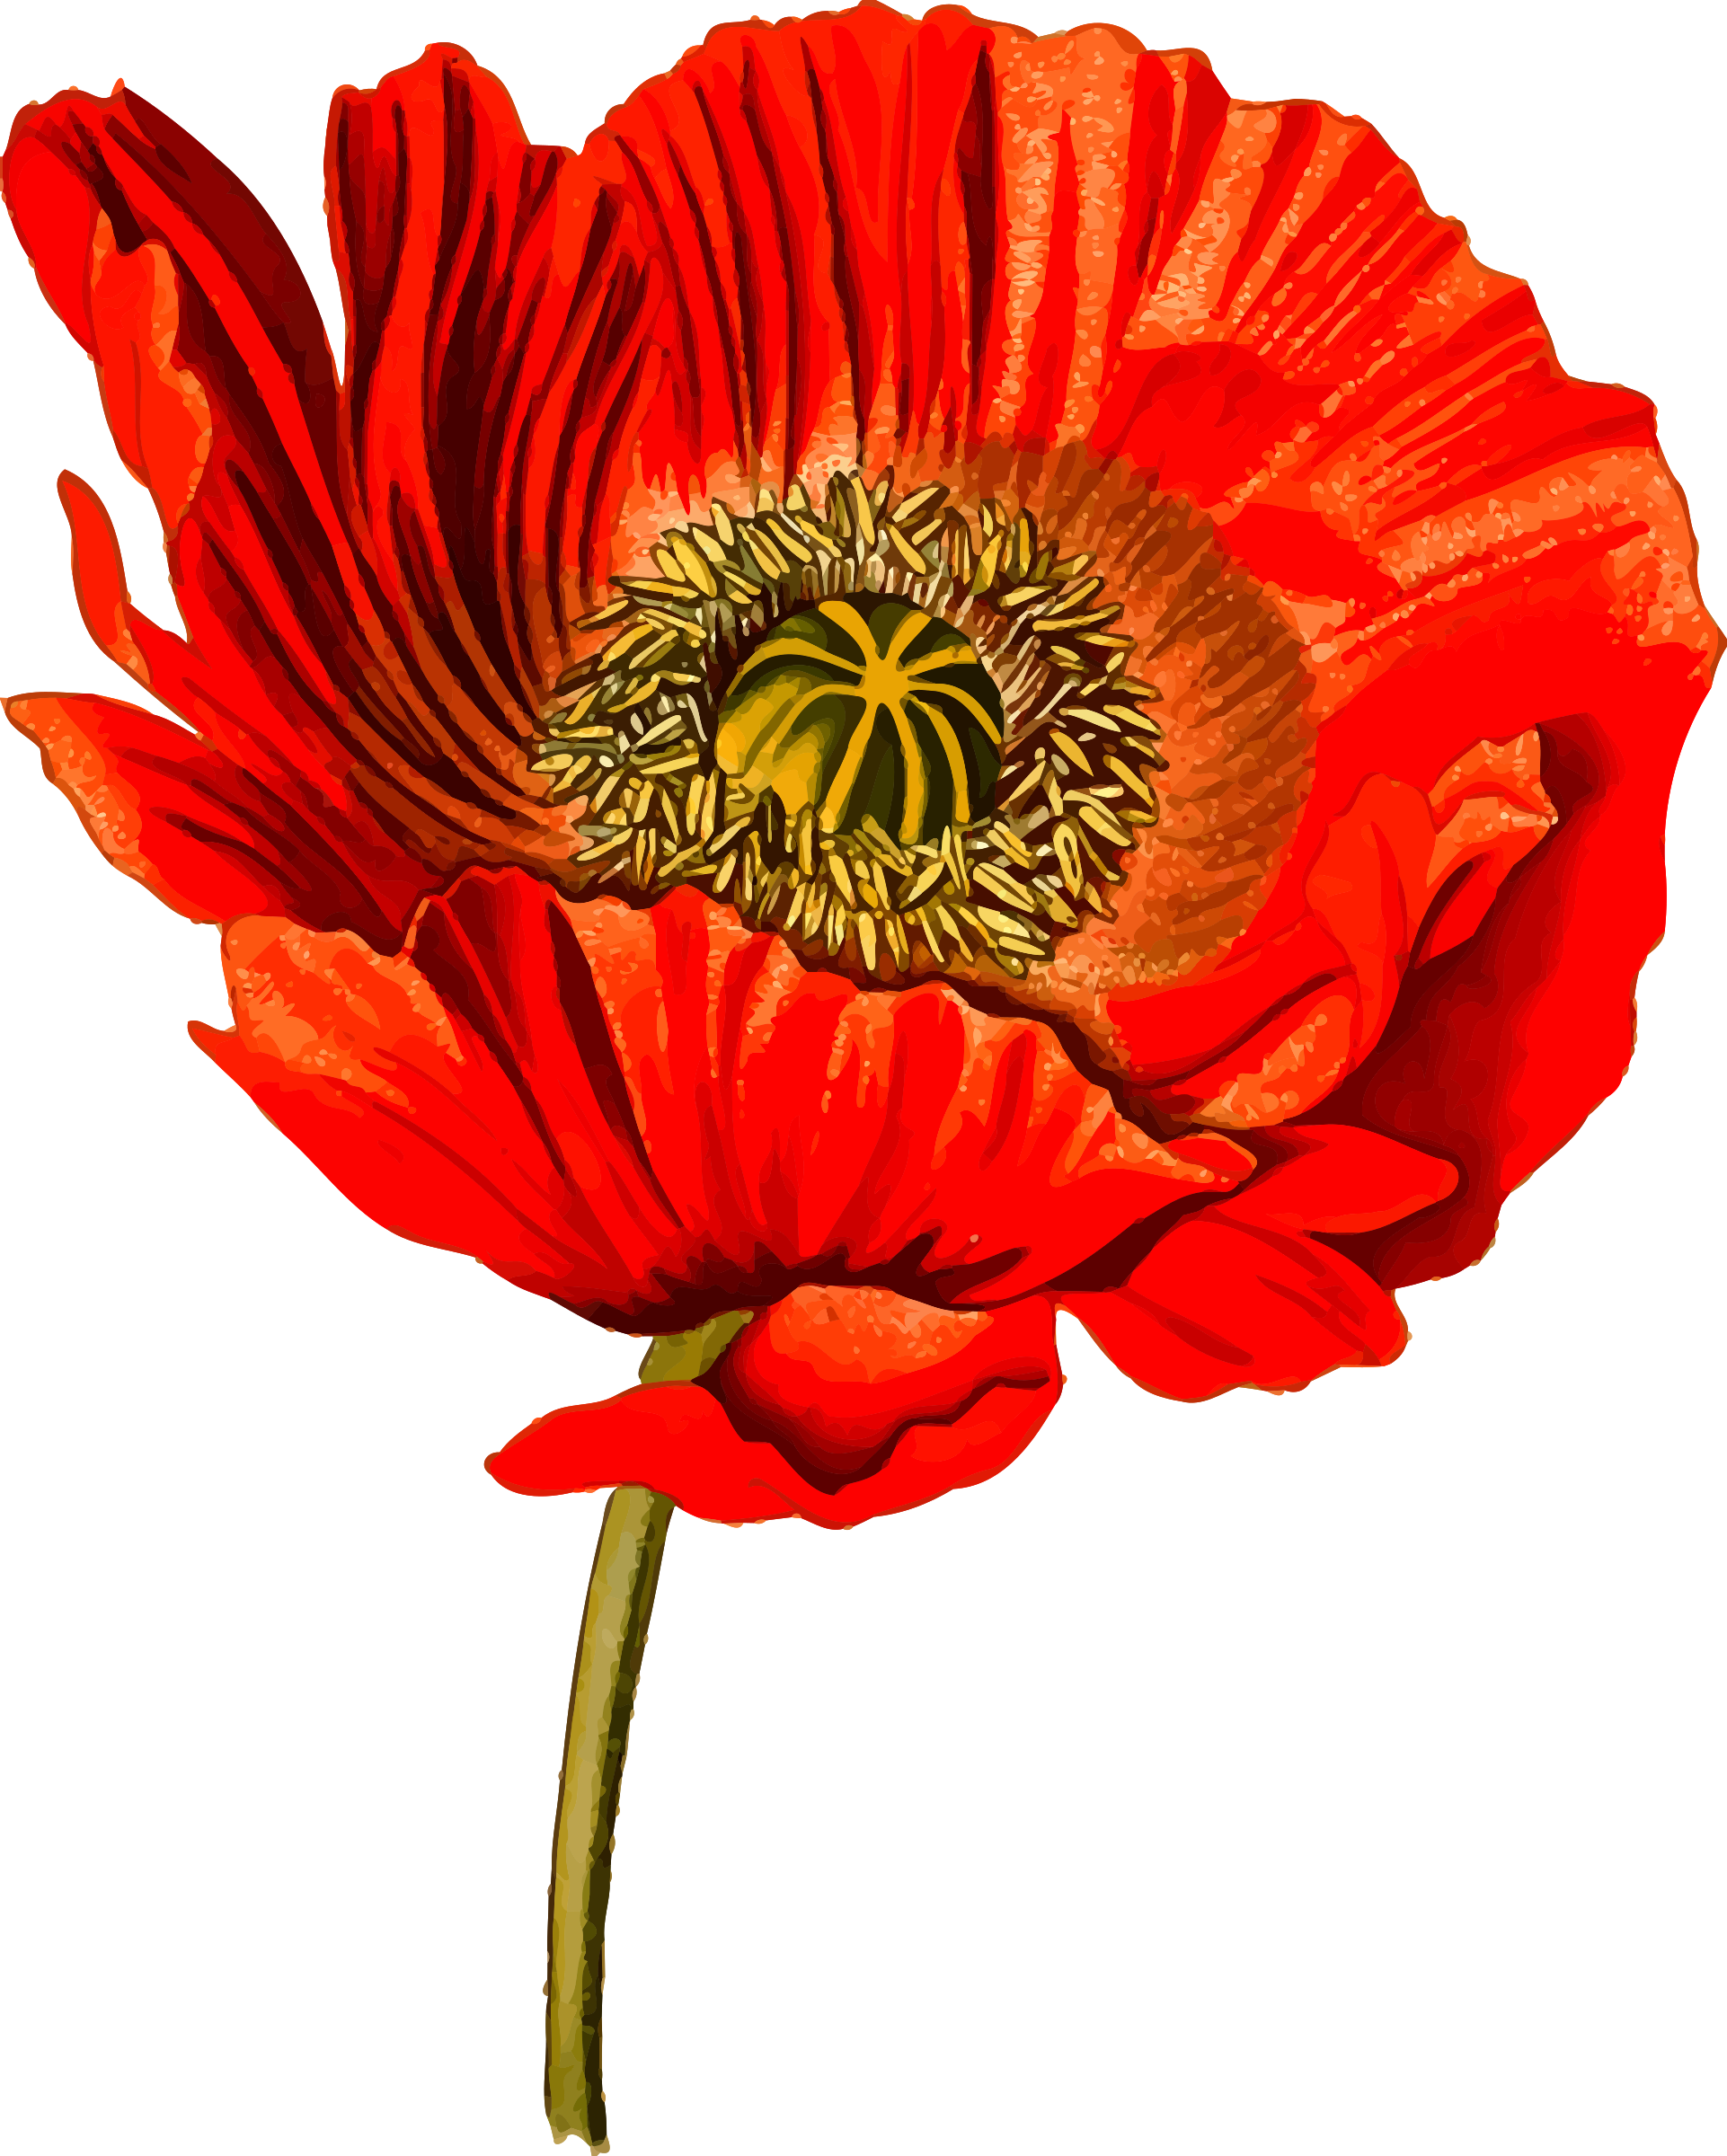 Opium poppy 2 (detailed) by Firkin